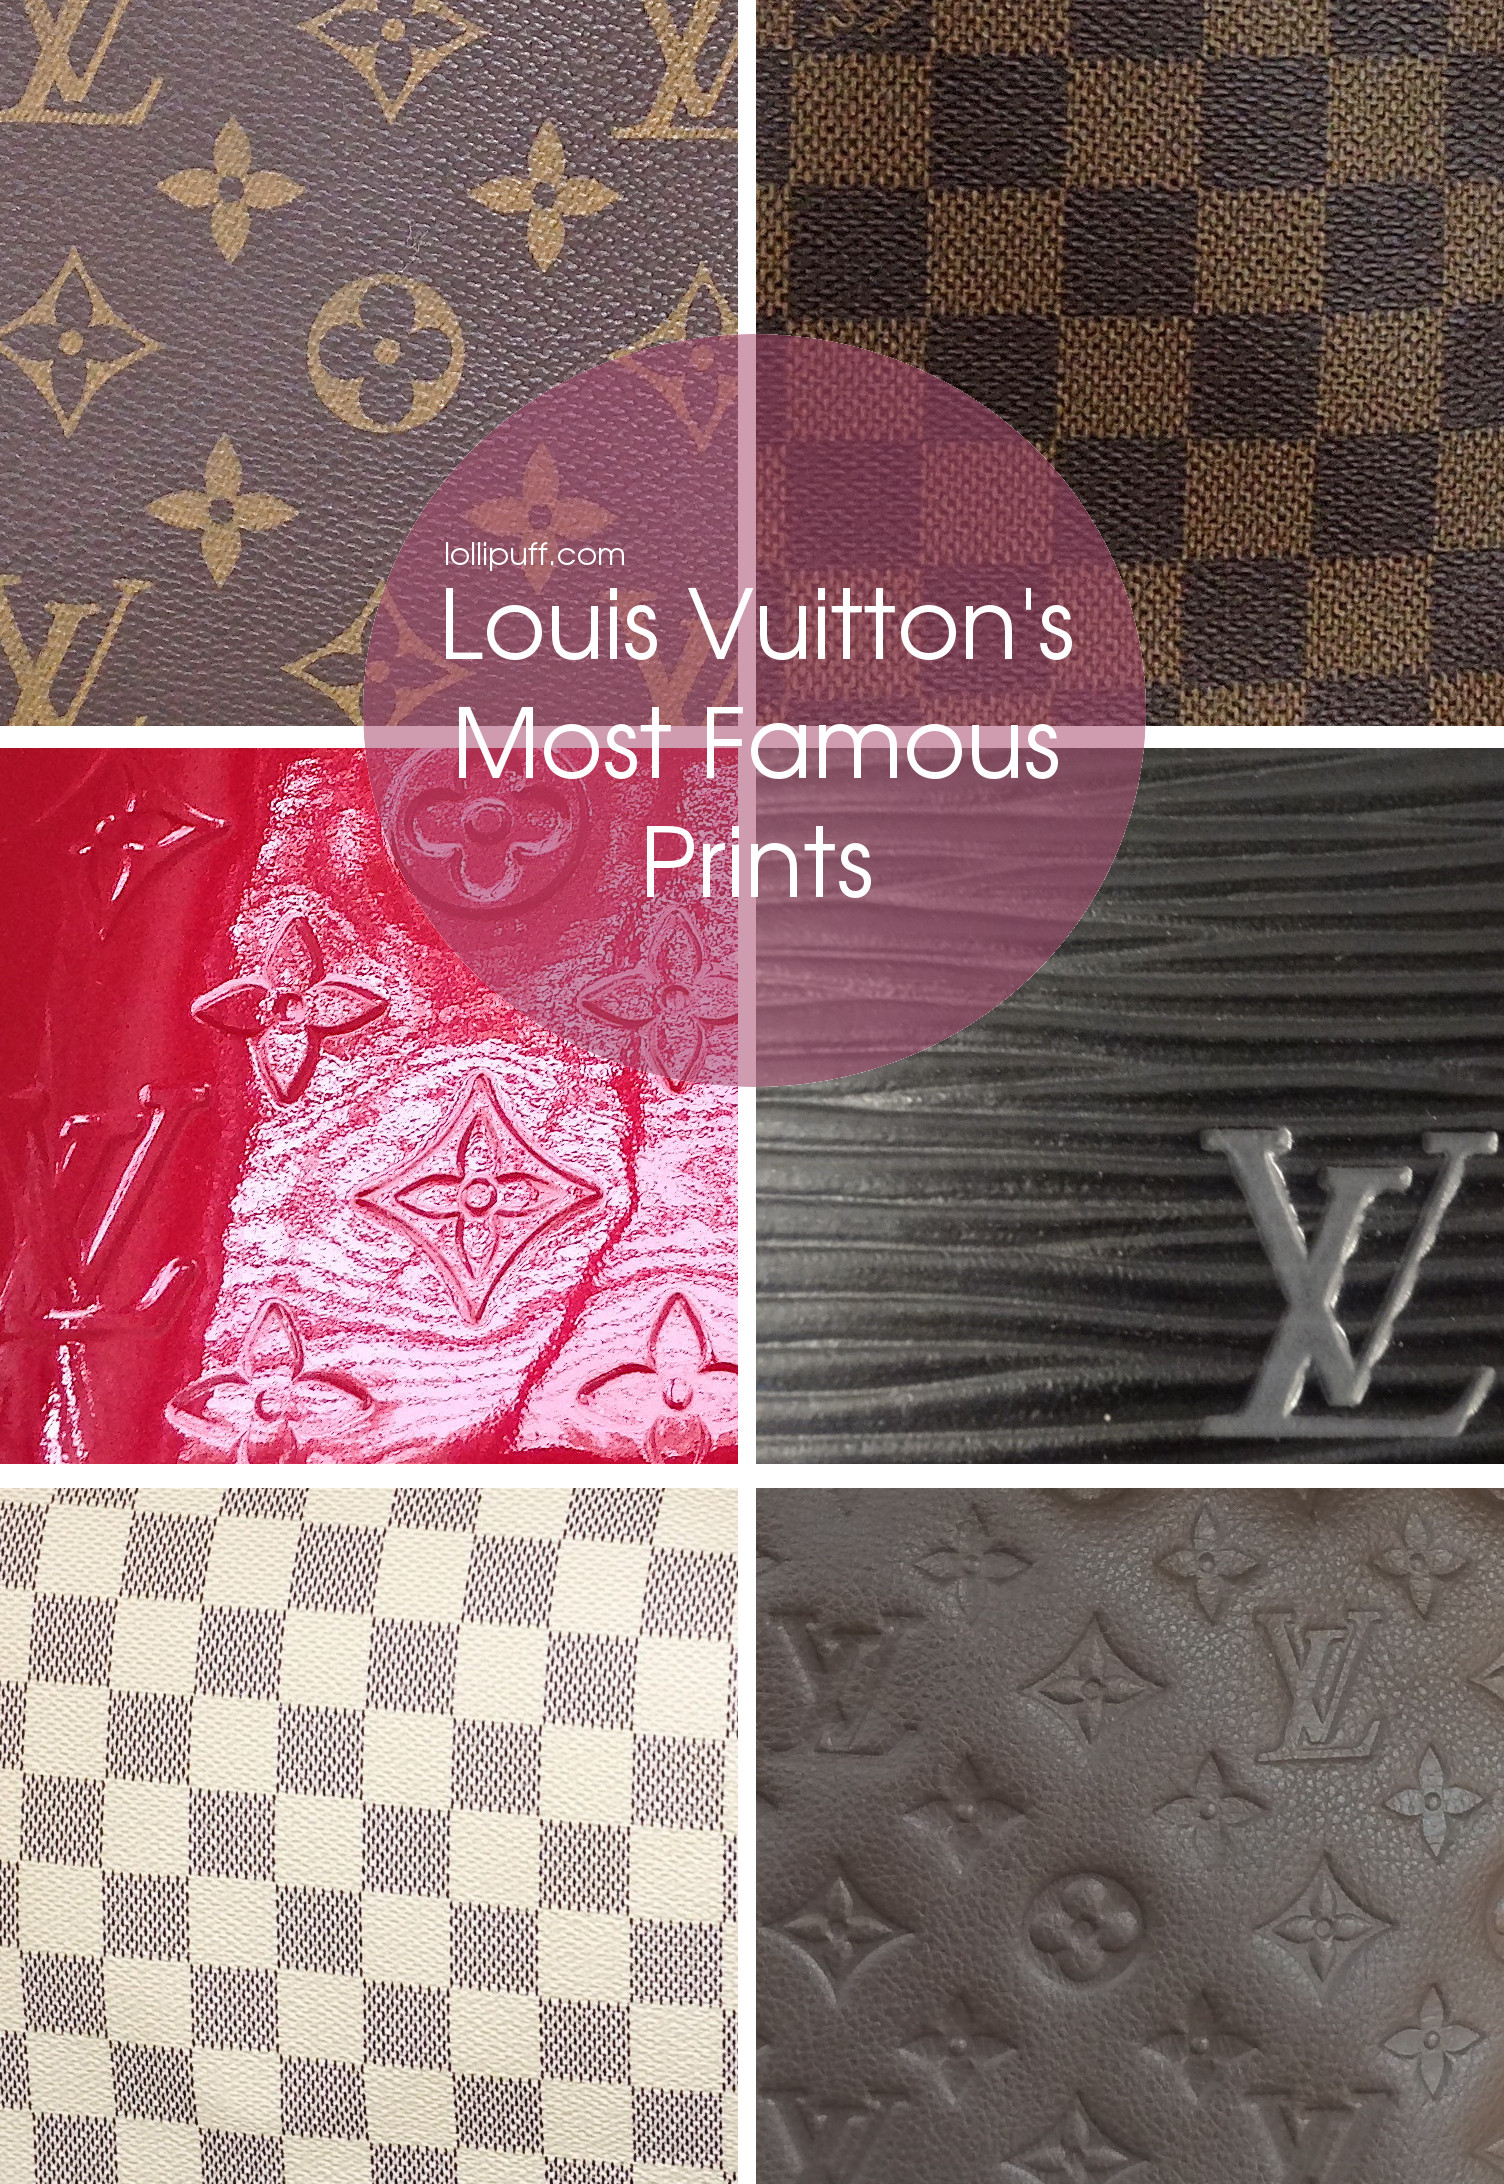 Different Louis Vuitton Prints and Patterns  398d6bcd12ce4